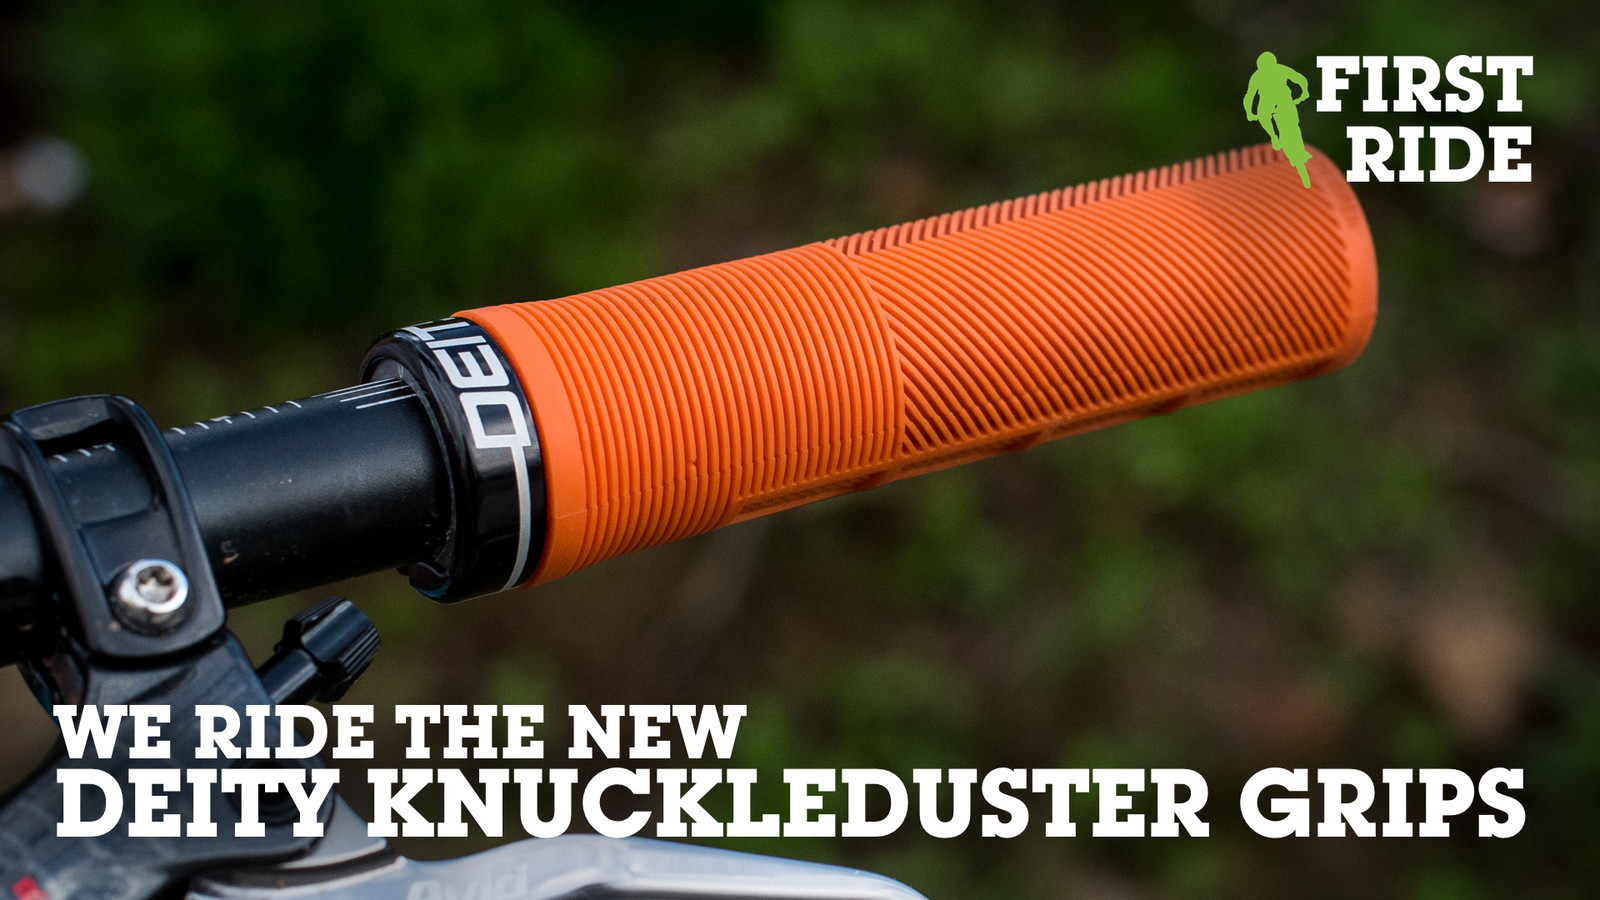 First Ride: Deity Knuckleduster Grips